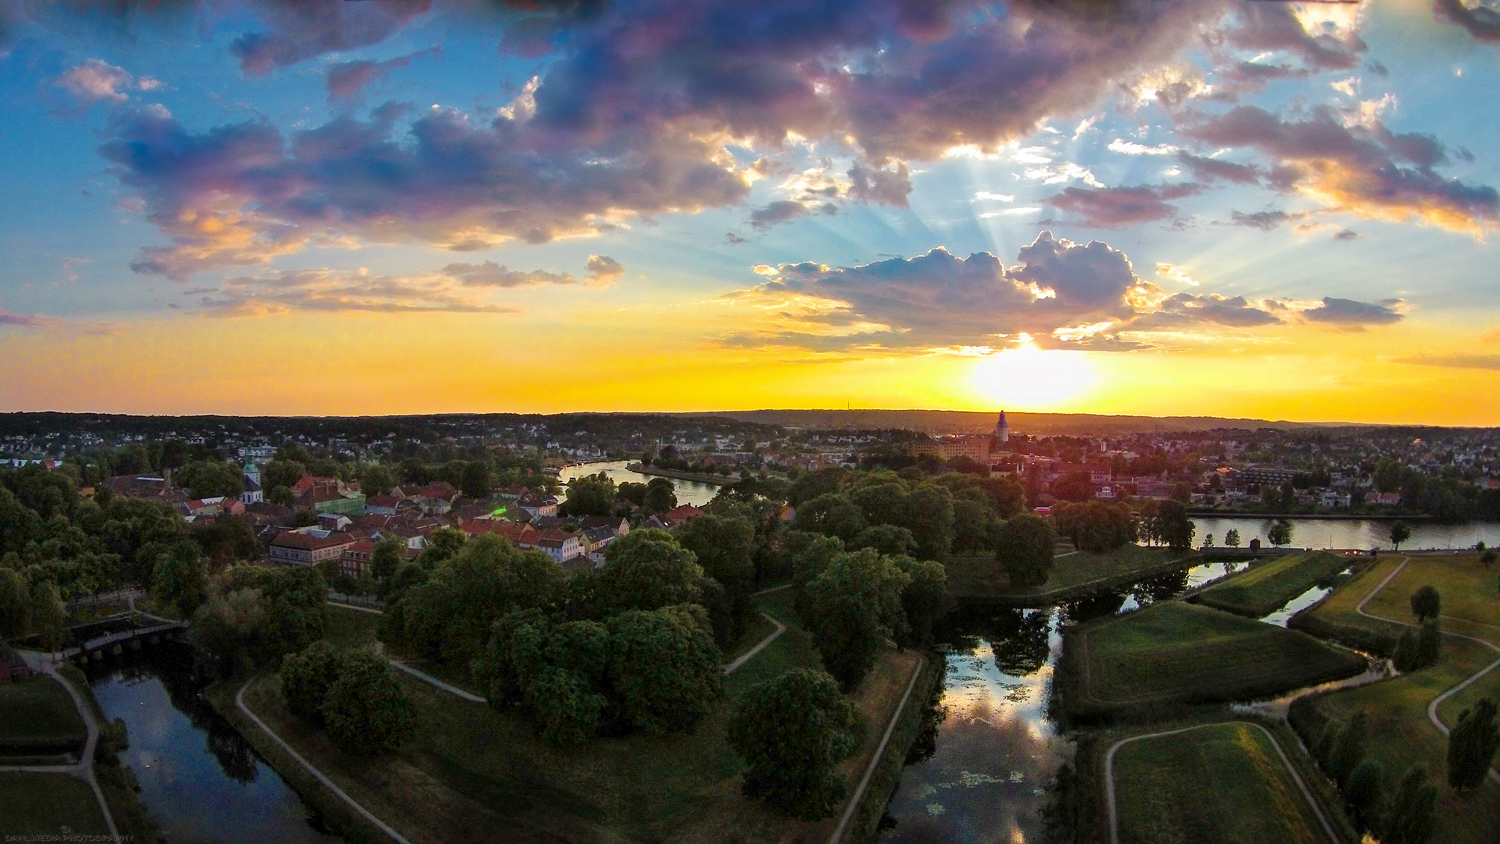 Fredrikstad is proud to be the best preserved fortress town in Scandinavia.